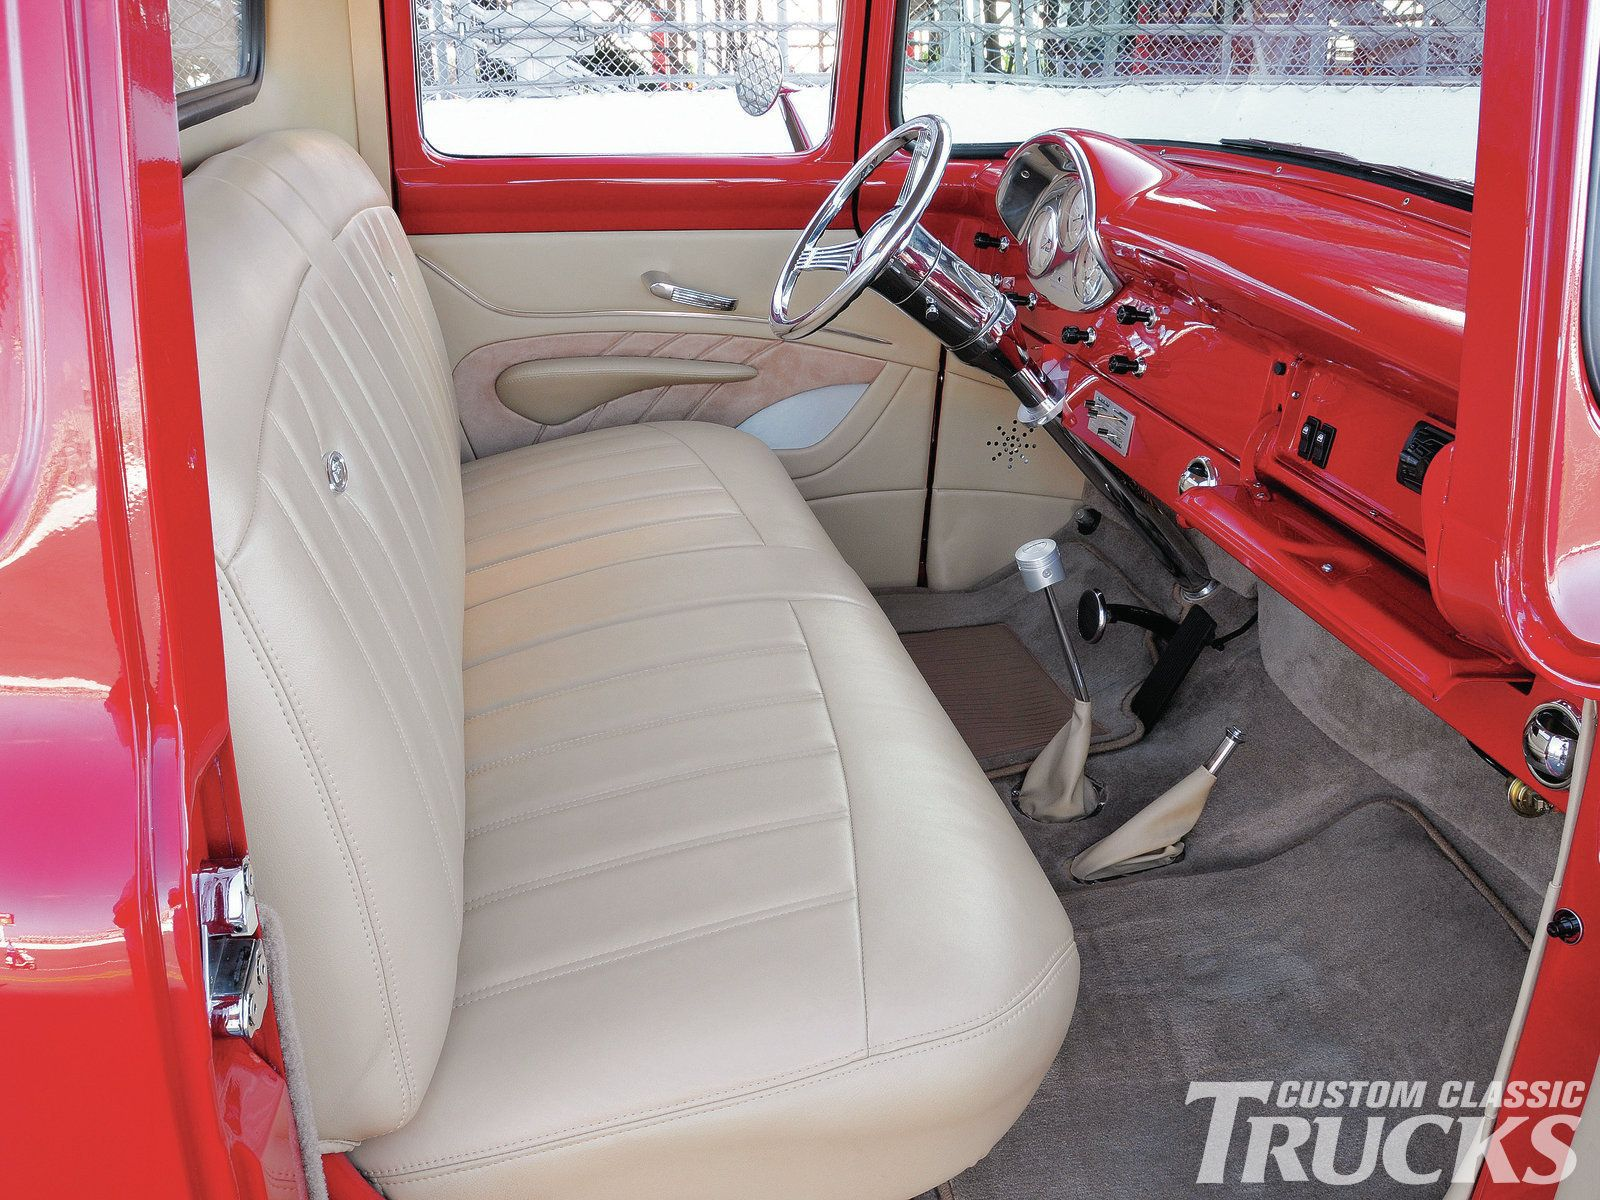 1956 Ford F100 Interior Photo 5 Classic Trucks Magazine Truck Interior 1956 Ford F100